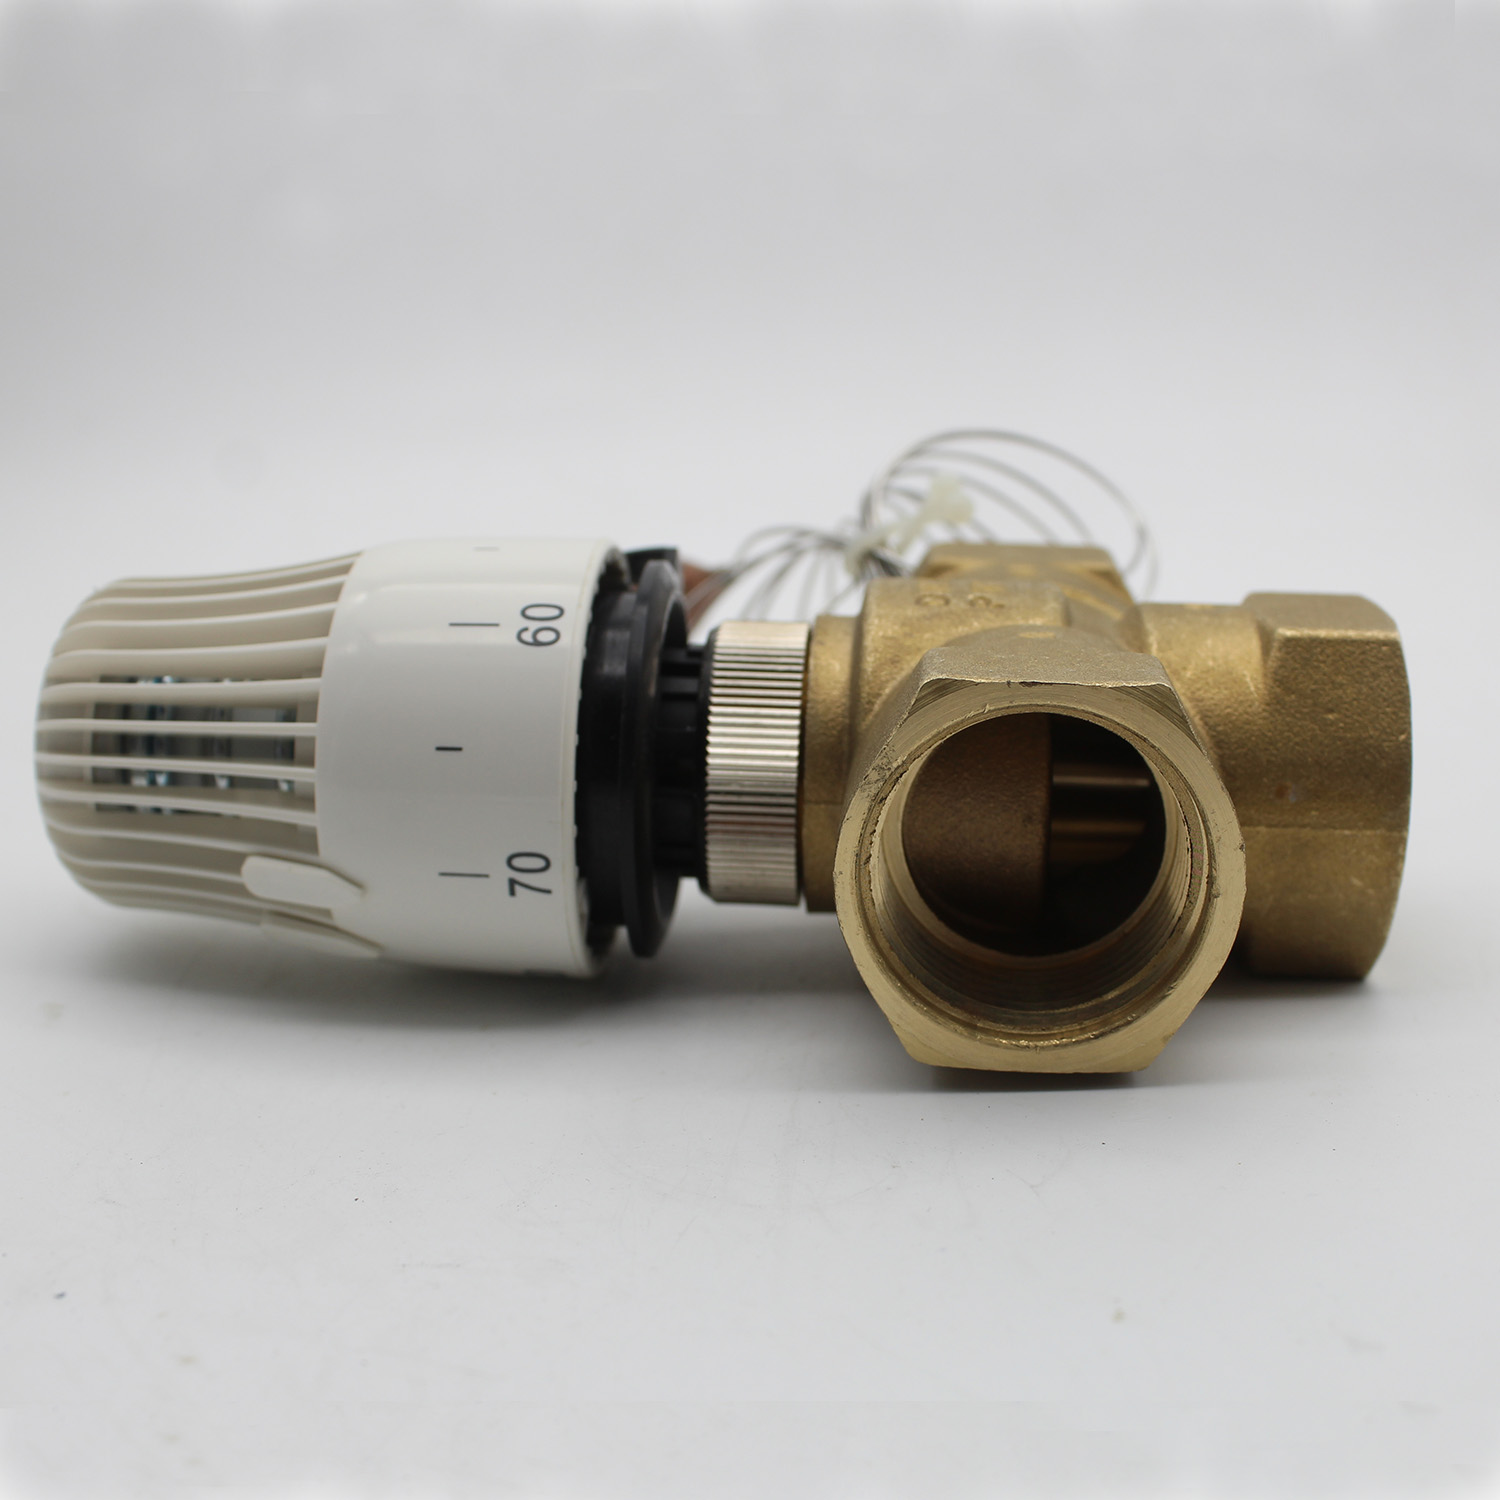 Energy saving 30 70 degree control Floor heating system thermostatic radiator valve M30*1.5 Remote controller 3 way brass valve-in Valve from Home Improvement    3